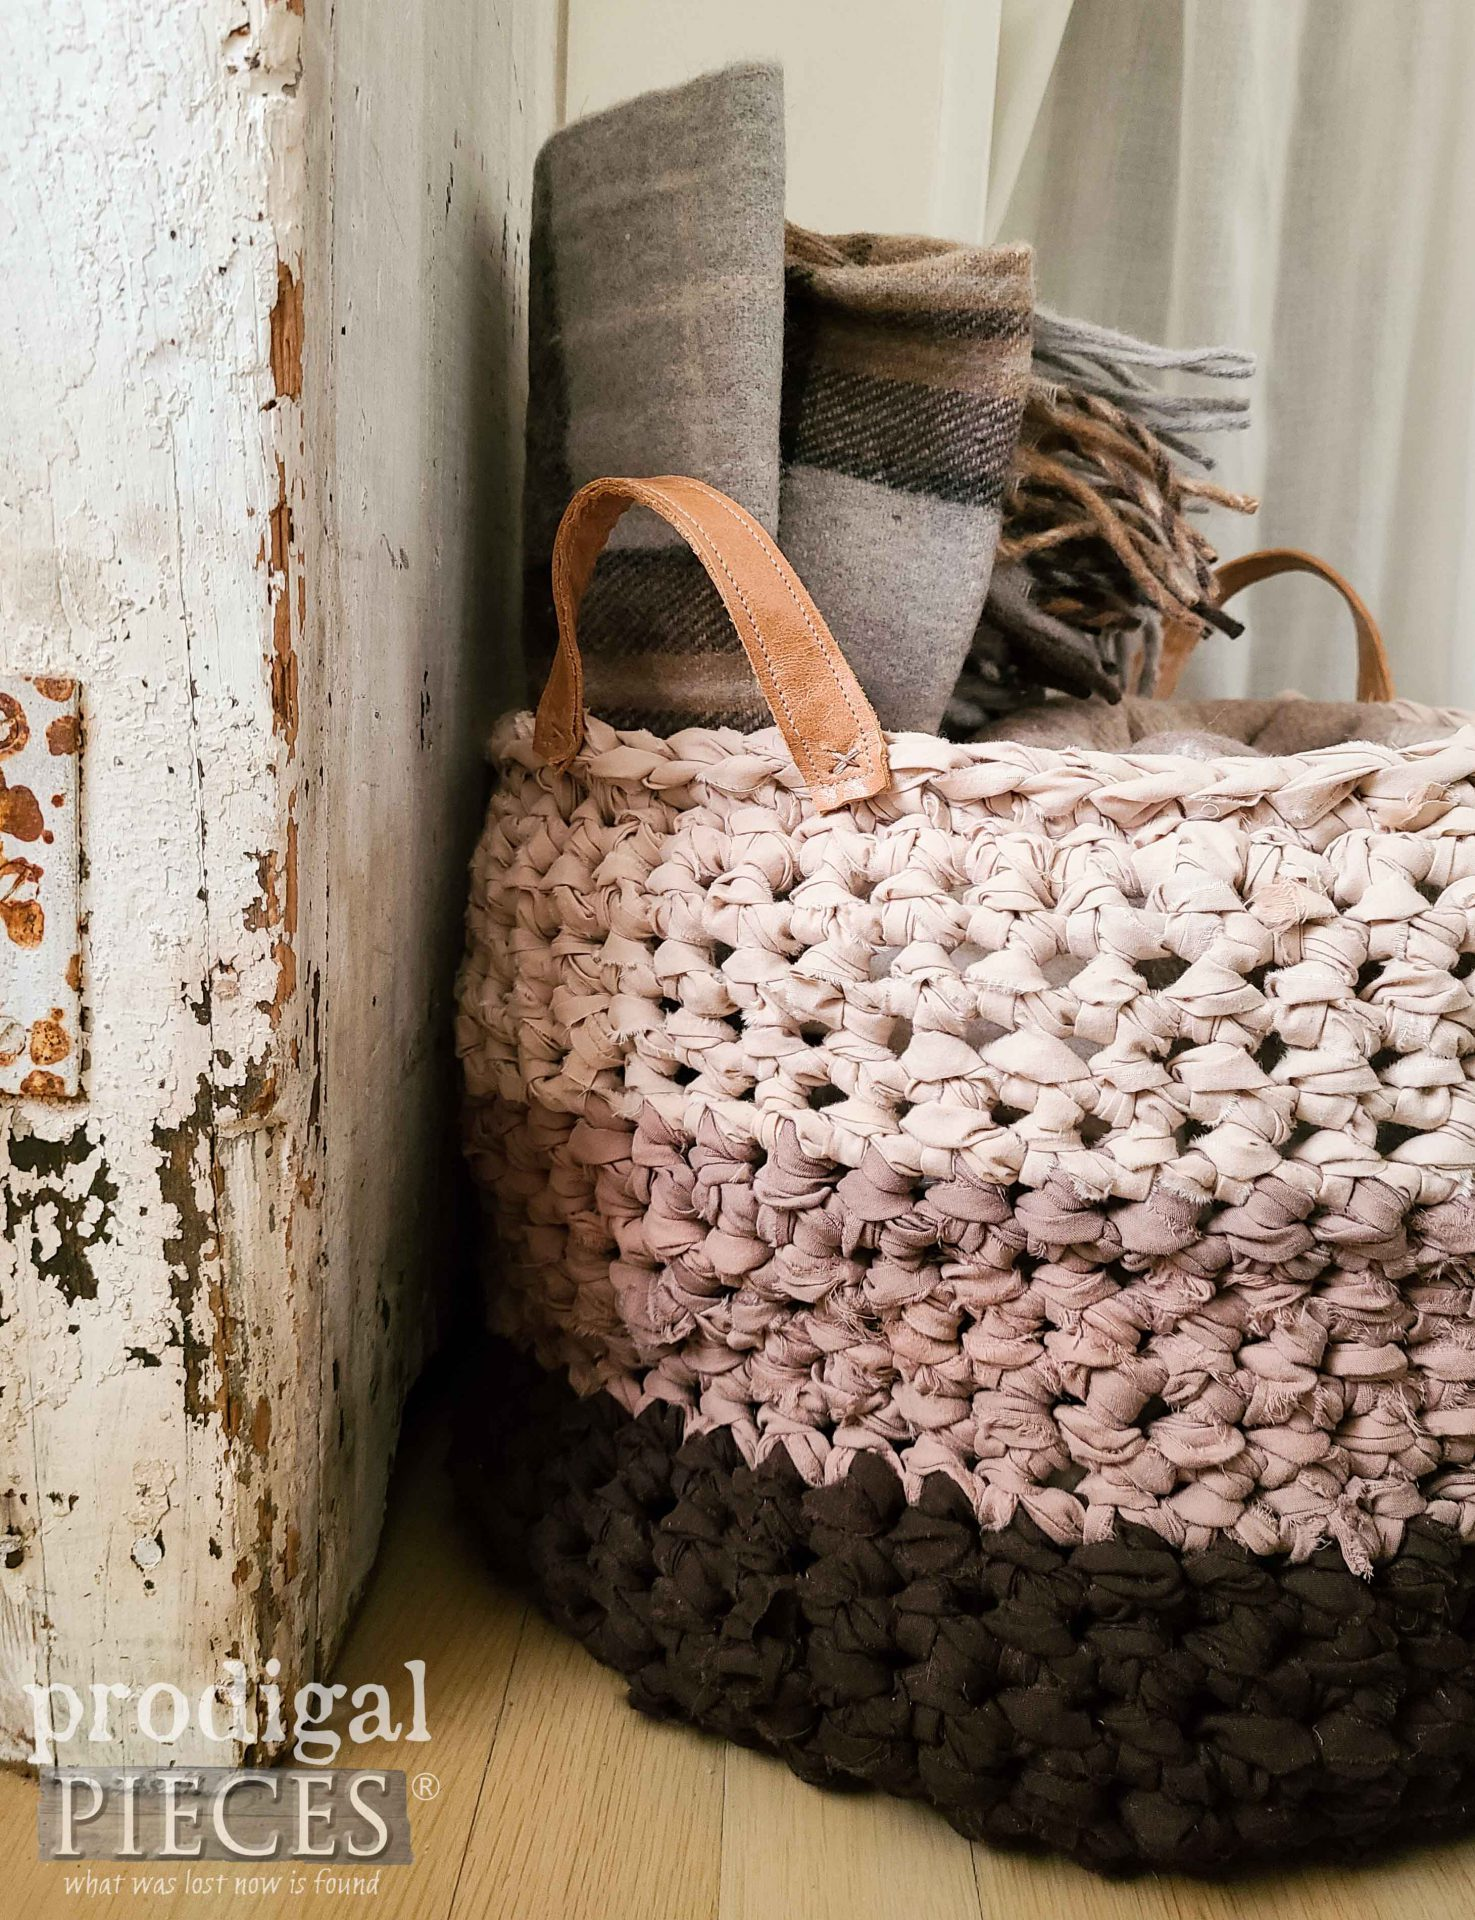 Ombre Crochet Basket Handmade from Bed Sheets by Larissa of Prodigal Pieces | prodigalpieces.com #prodigalpieces #crochet #handmade #home #basket #farmhouse